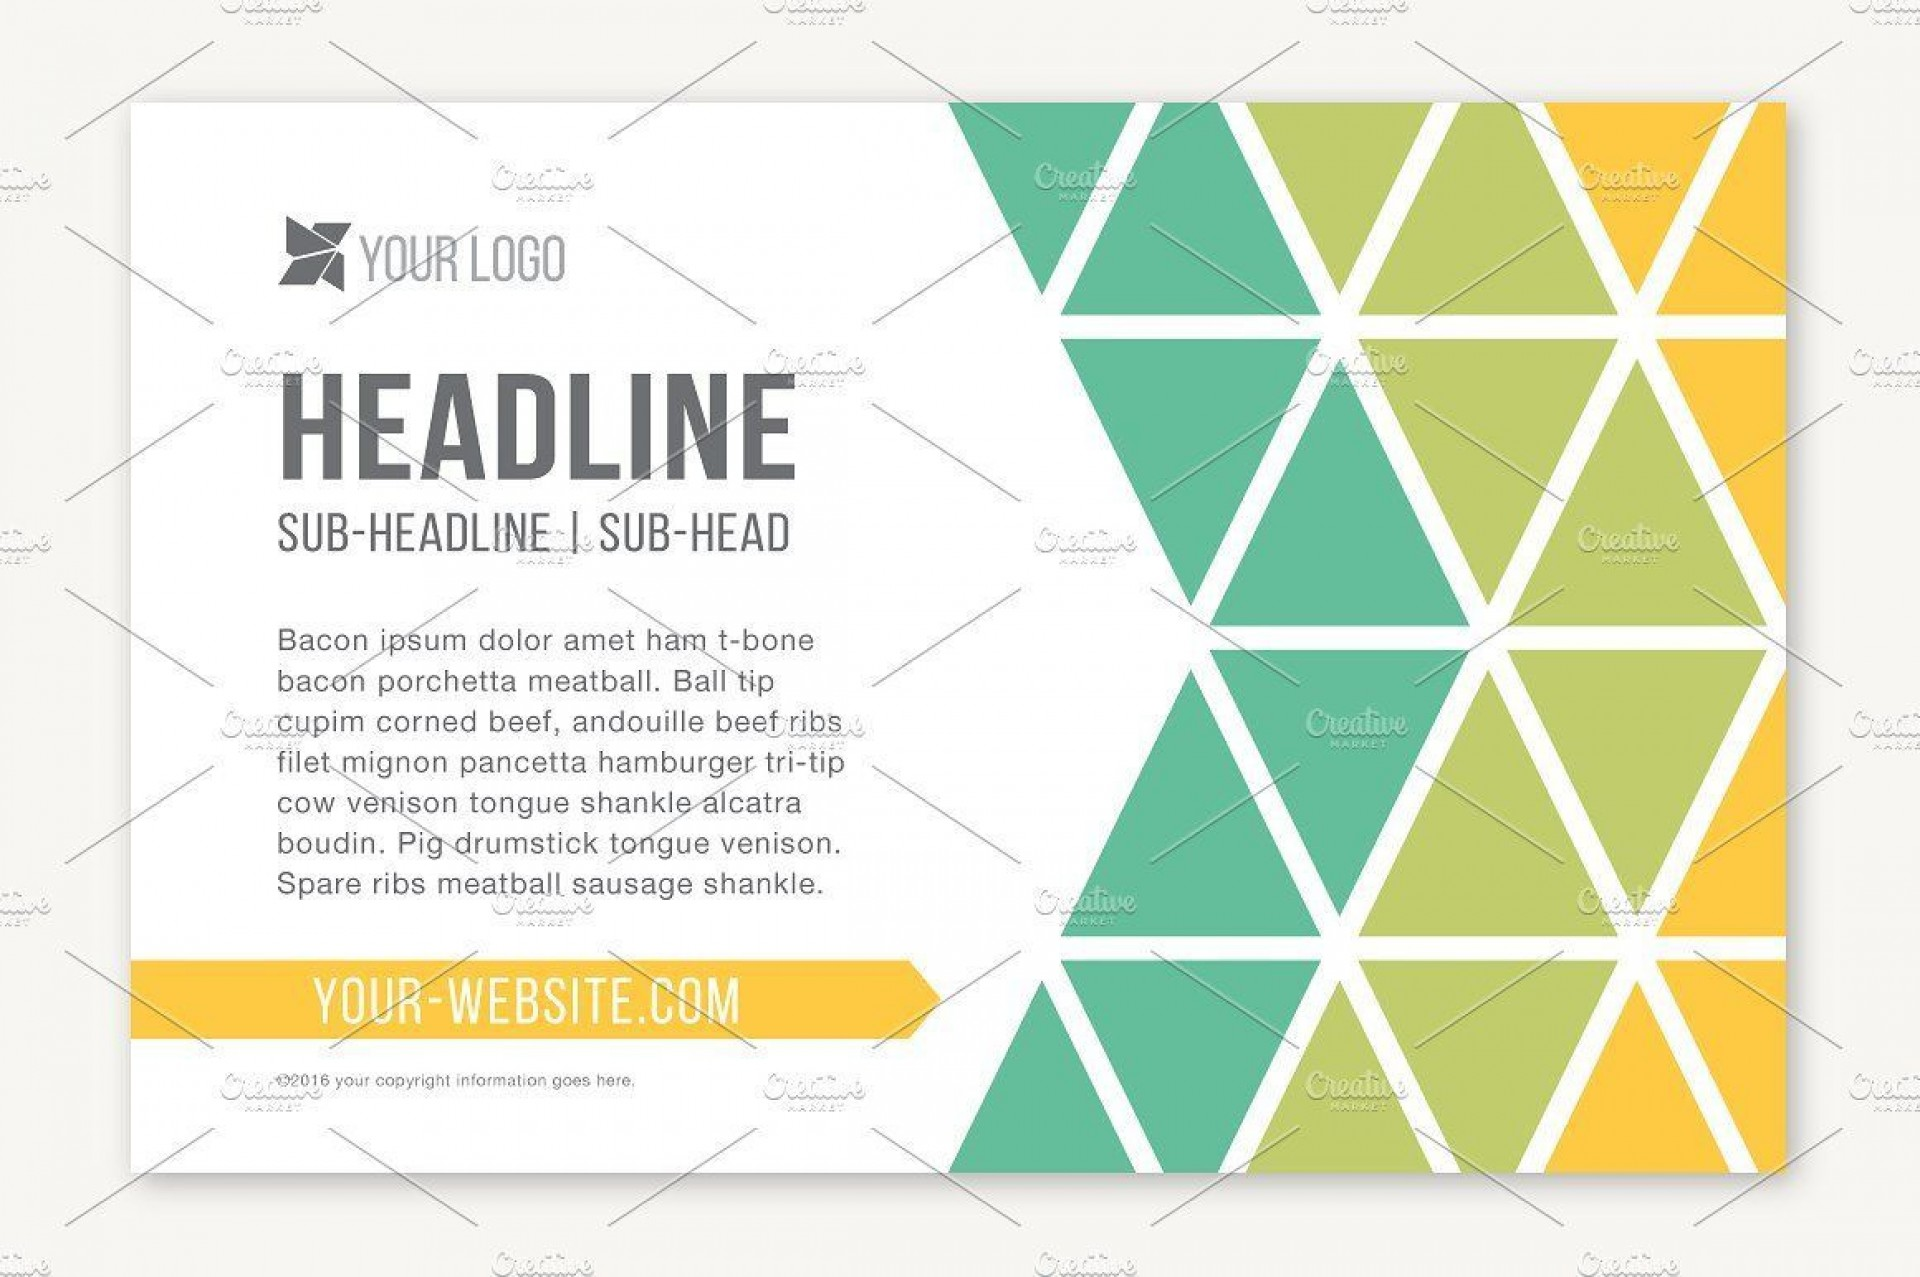 001 Awesome Half Page Flyer Template High Resolution  Templates Google Doc Free Word Canva1920